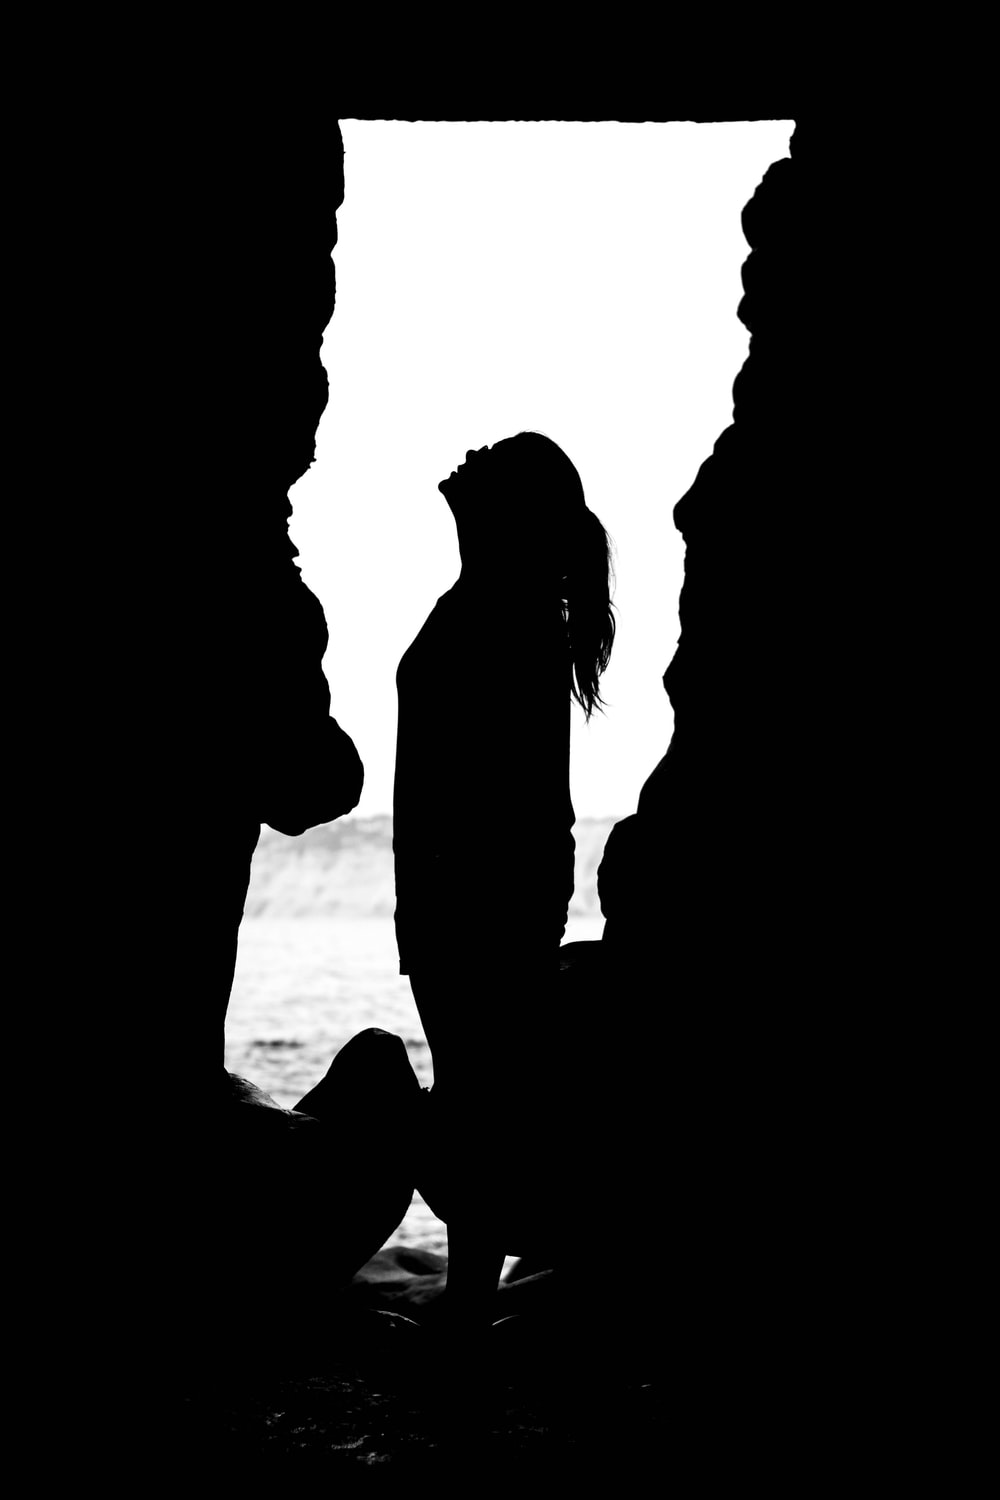 silhouette of woman looking up inside cave